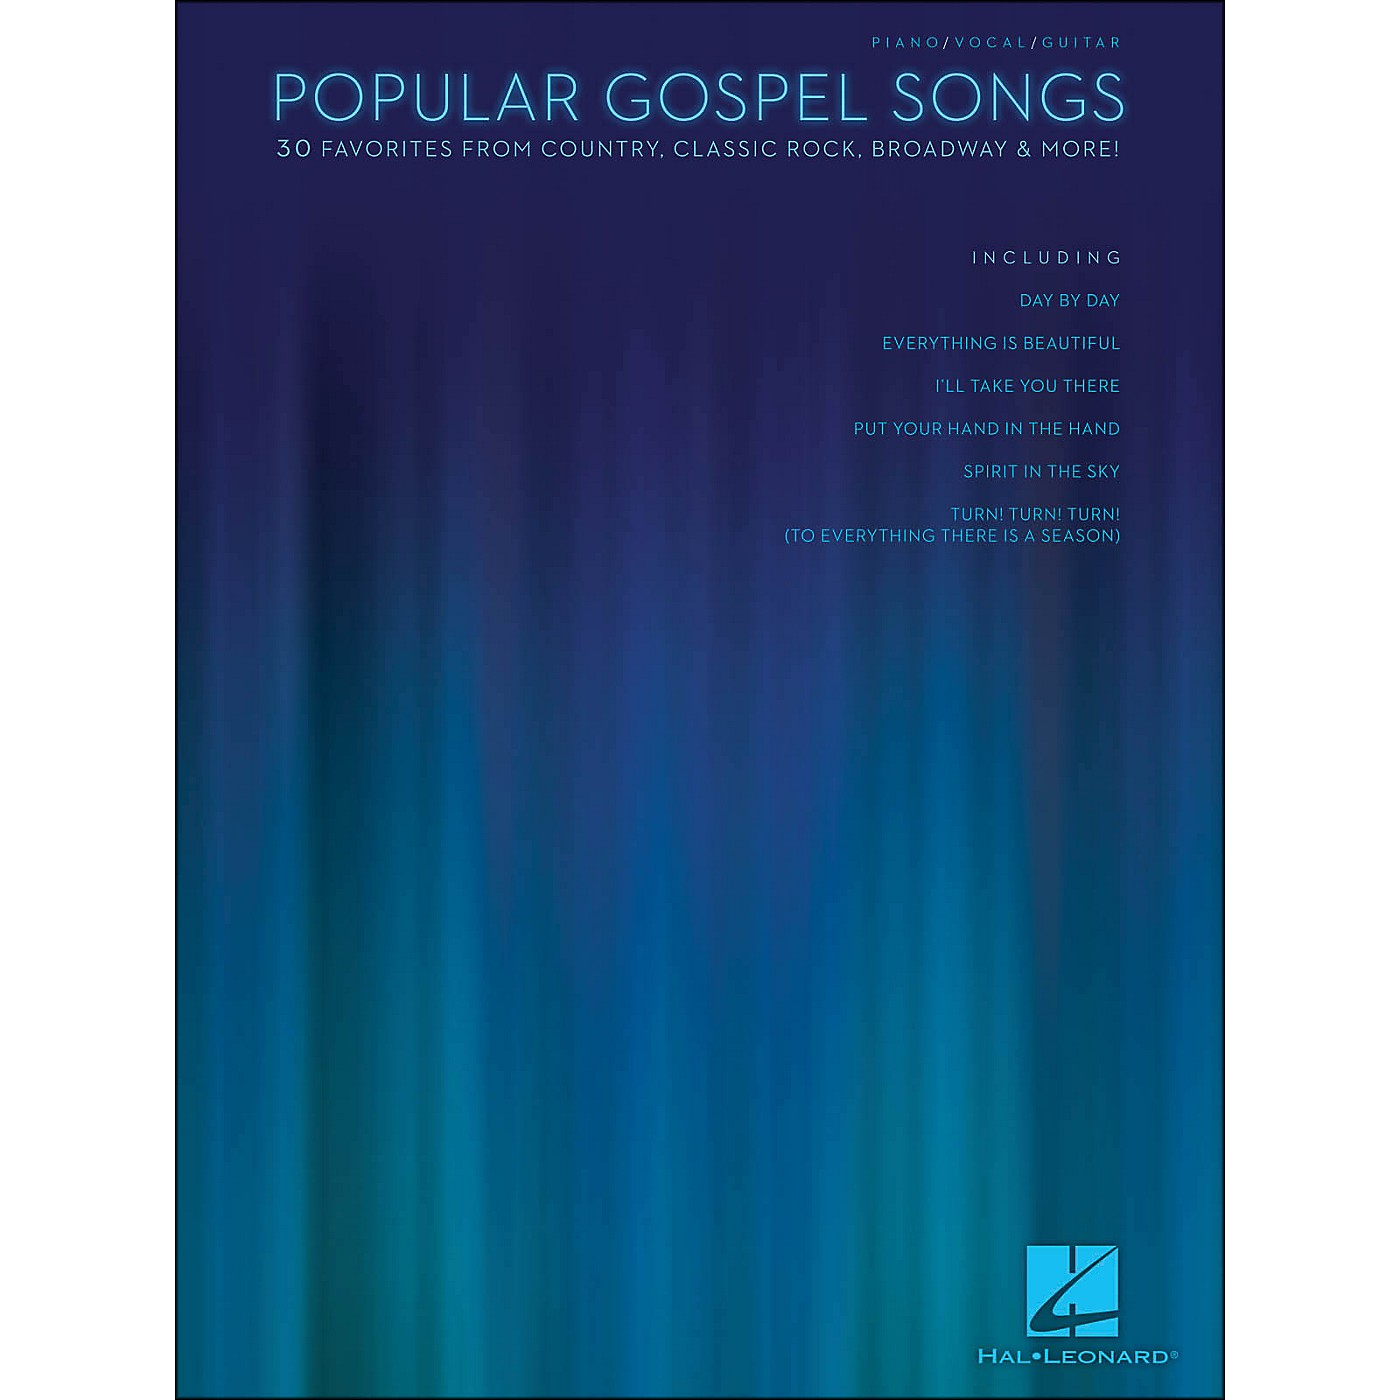 Hal Leonard Popular Gospel Songs - 30 Favorites From Country, Classic Rock, Broadway & More arranged for piano, vocal, and guitar (P/V/G) thumbnail